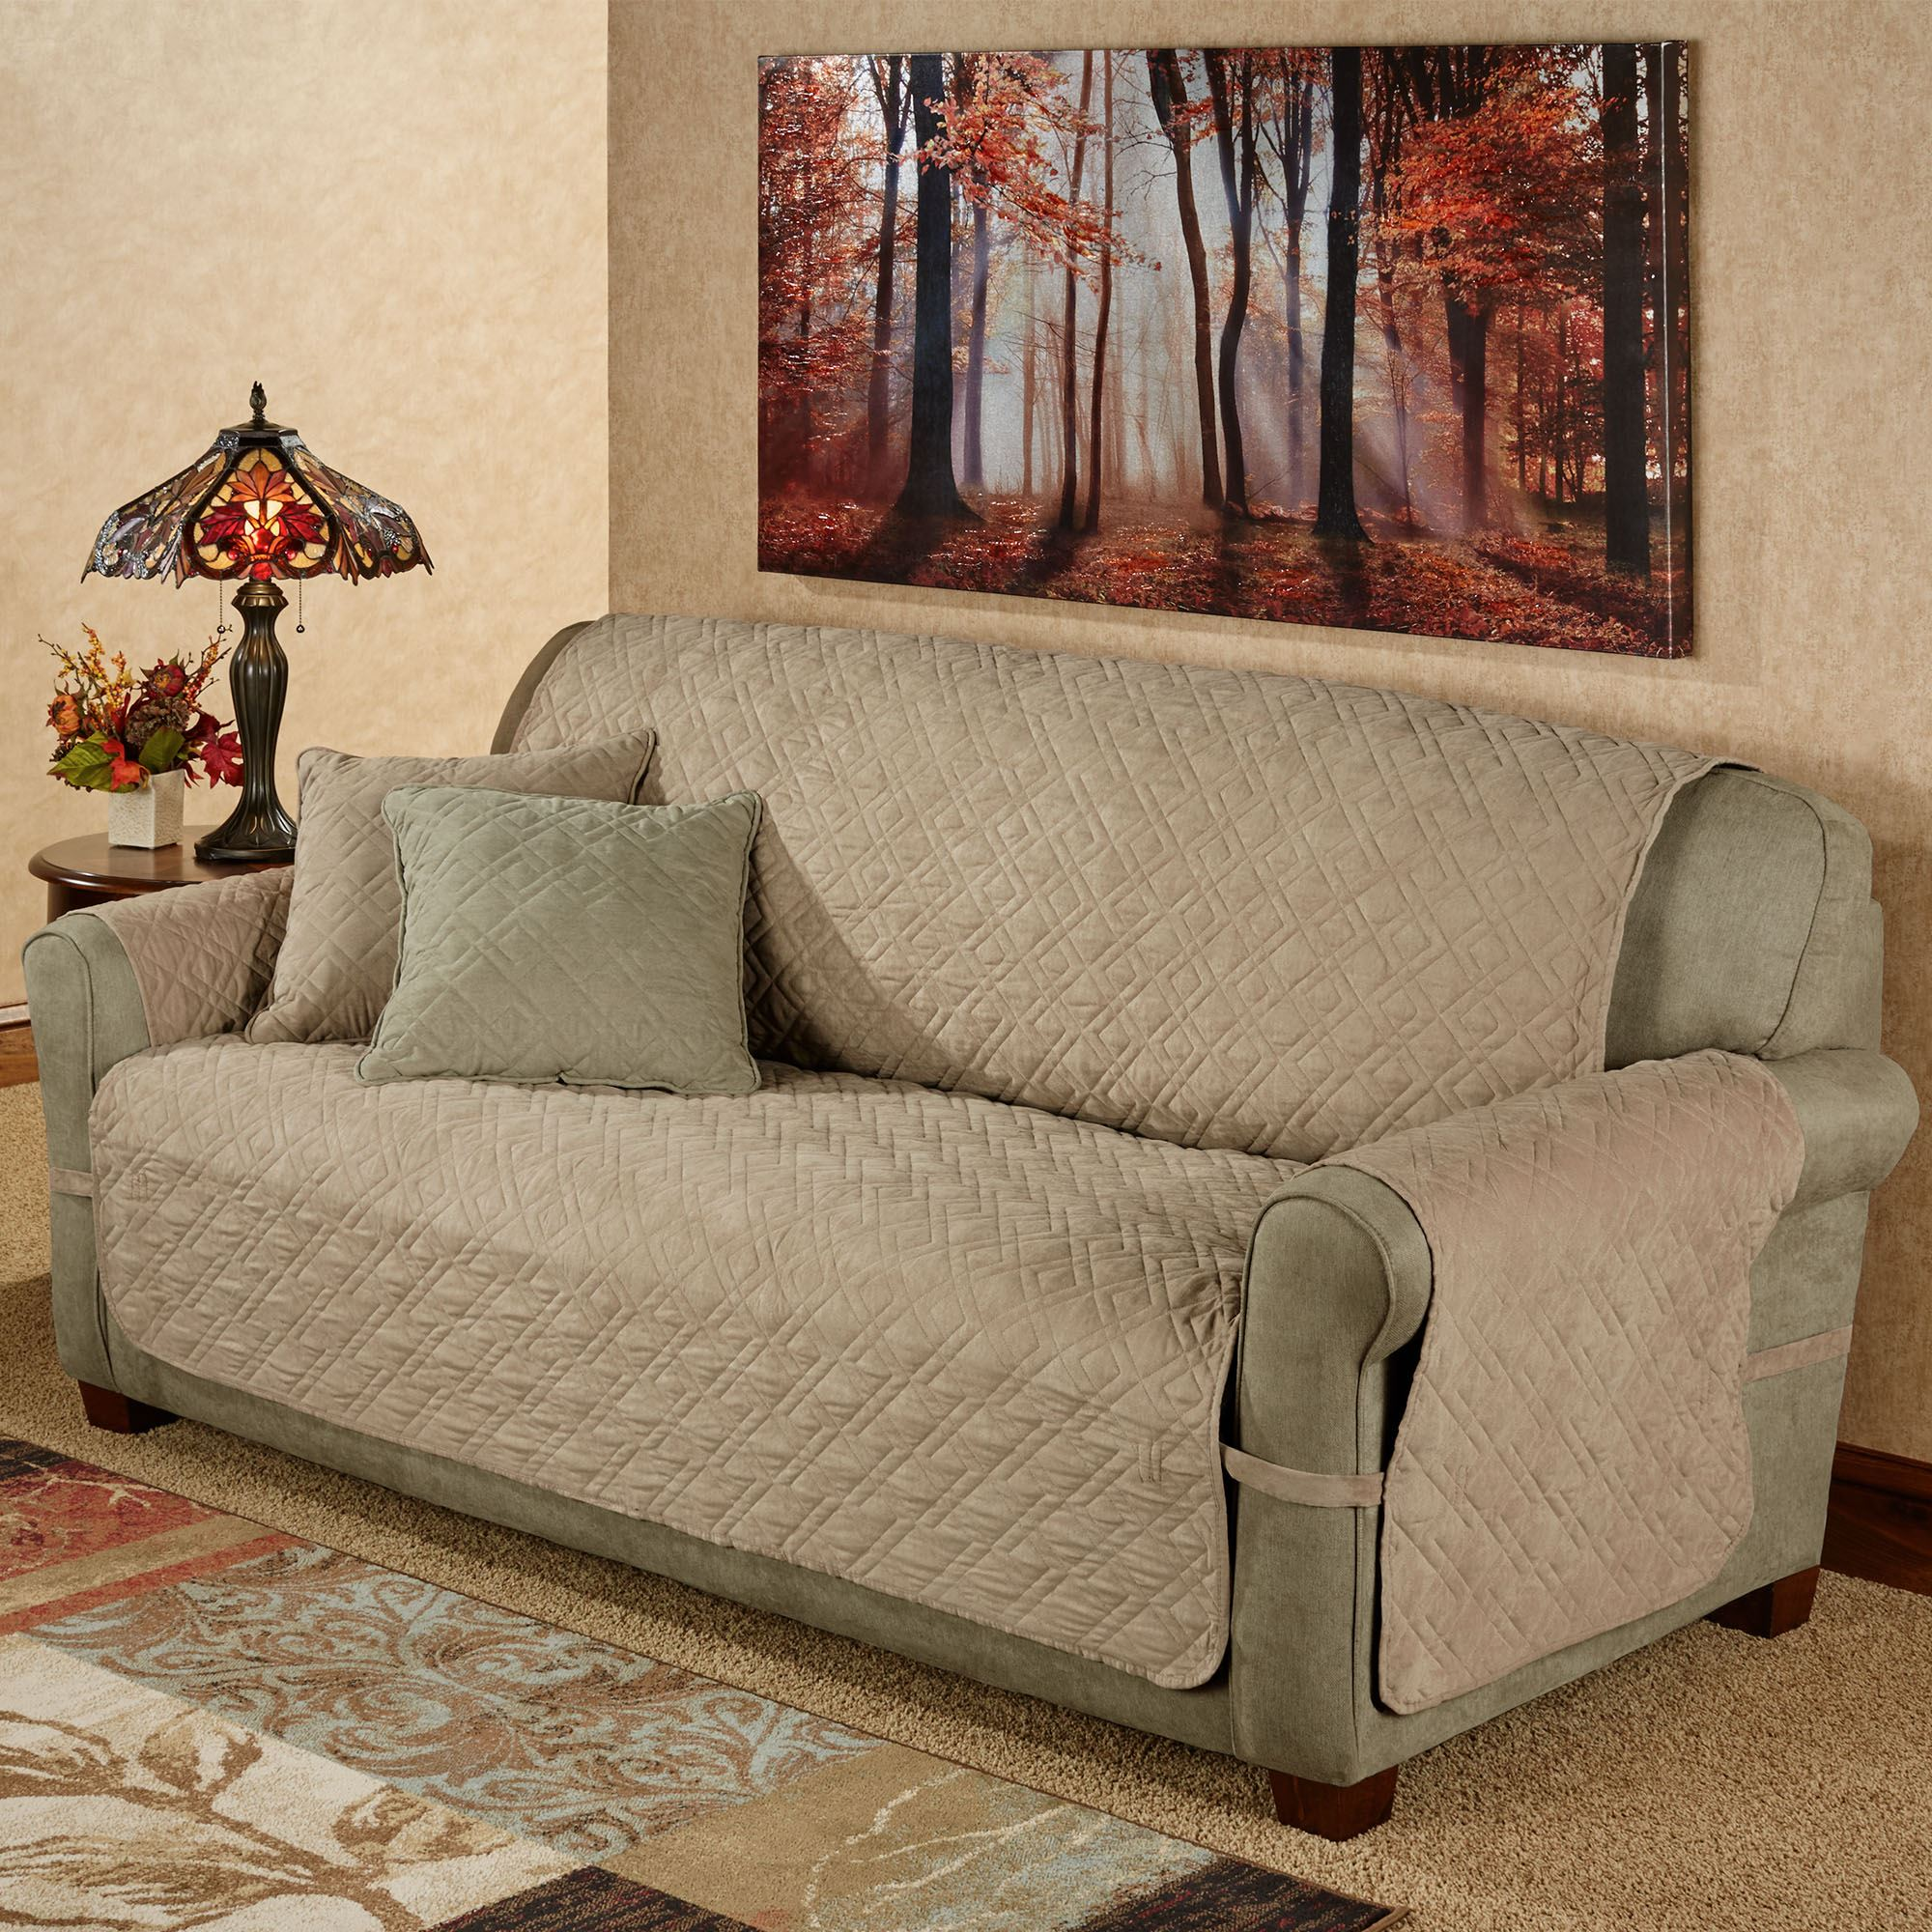 Mason Ultimate Quilted Furniture Covers